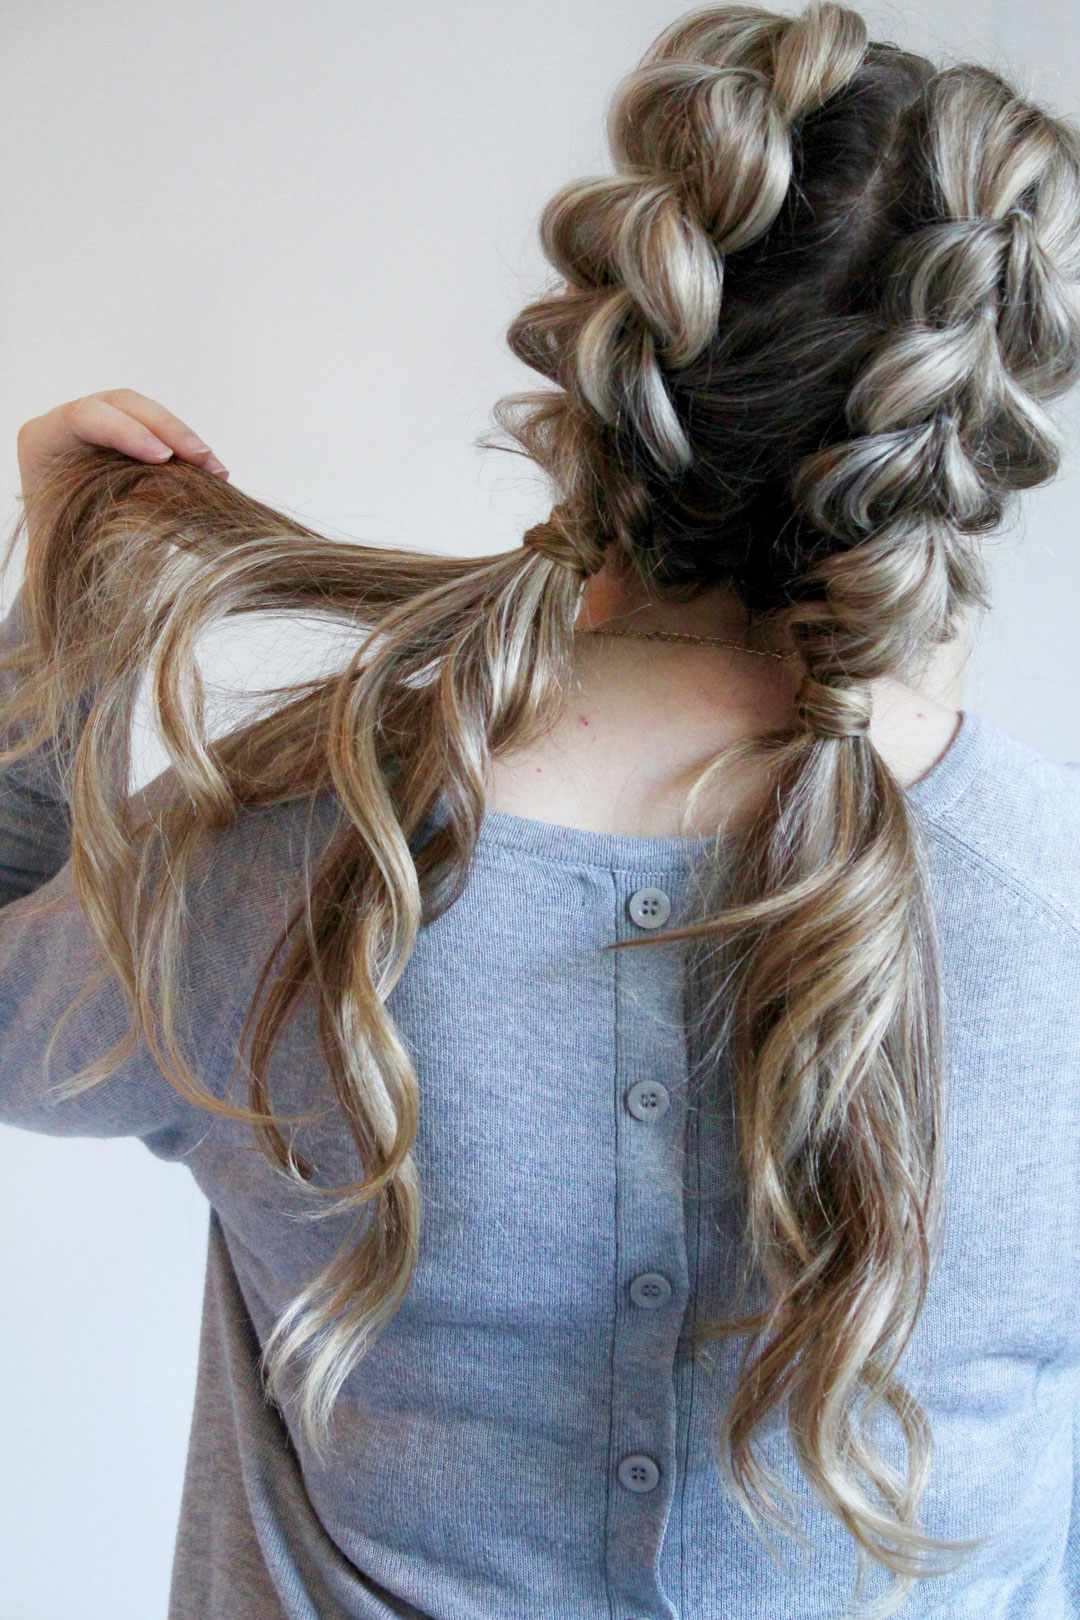 12 Easy and Cute Hairstyles for Curly Hair  Southern Living